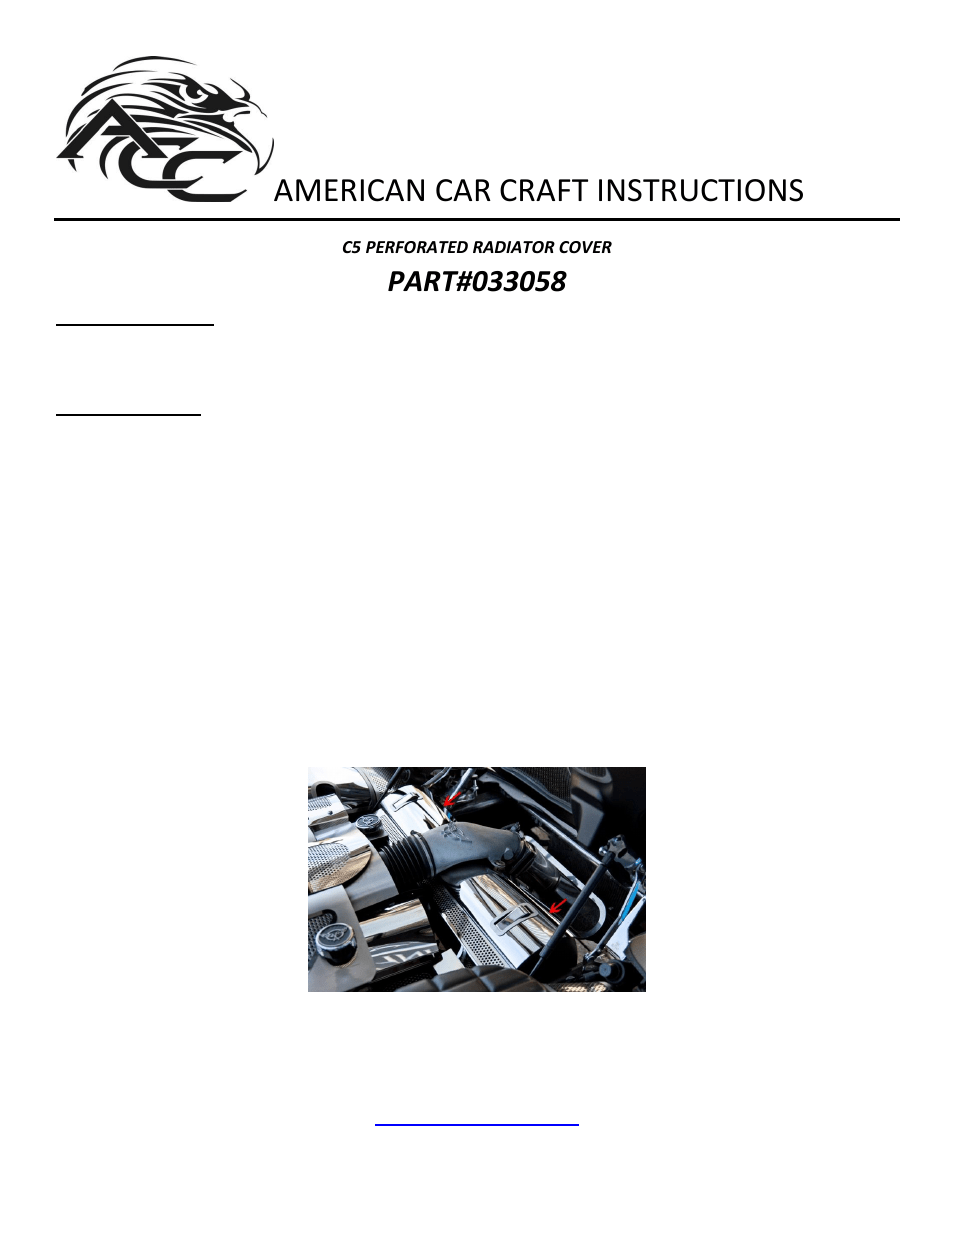 hight resolution of american car craft corvette radiator cover perforated 1997 2004 c5 z06 user manual 1 page